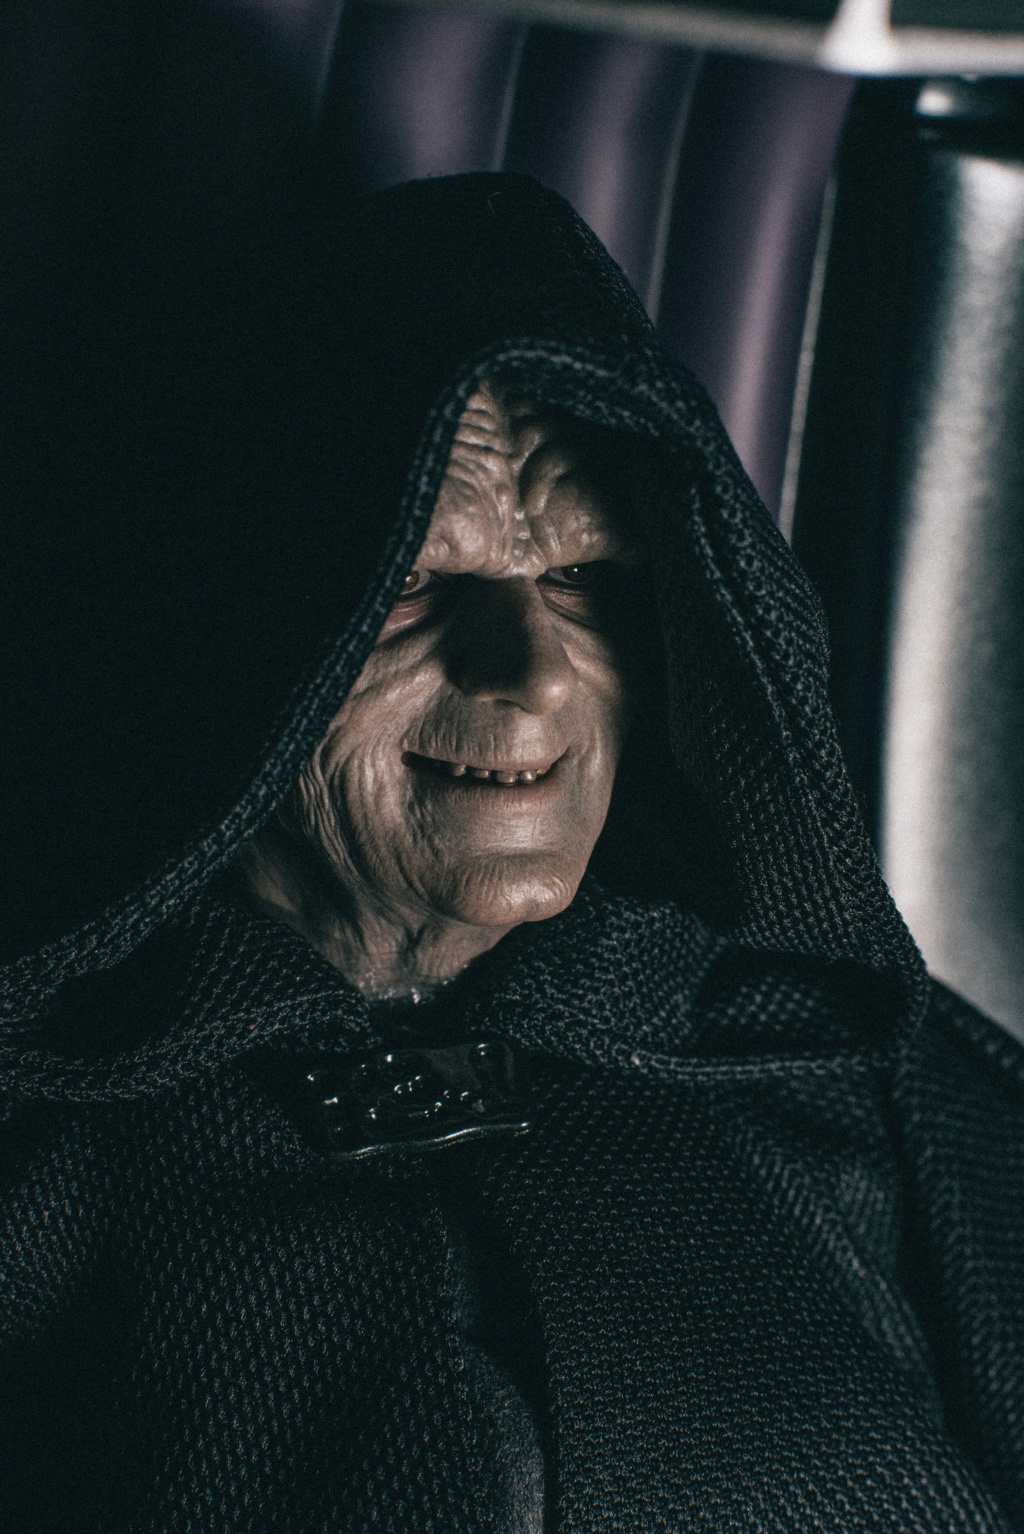 rotj - Hot Toys Star Wars Emperor Palpatine (Deluxe) Review - Page 2 4149